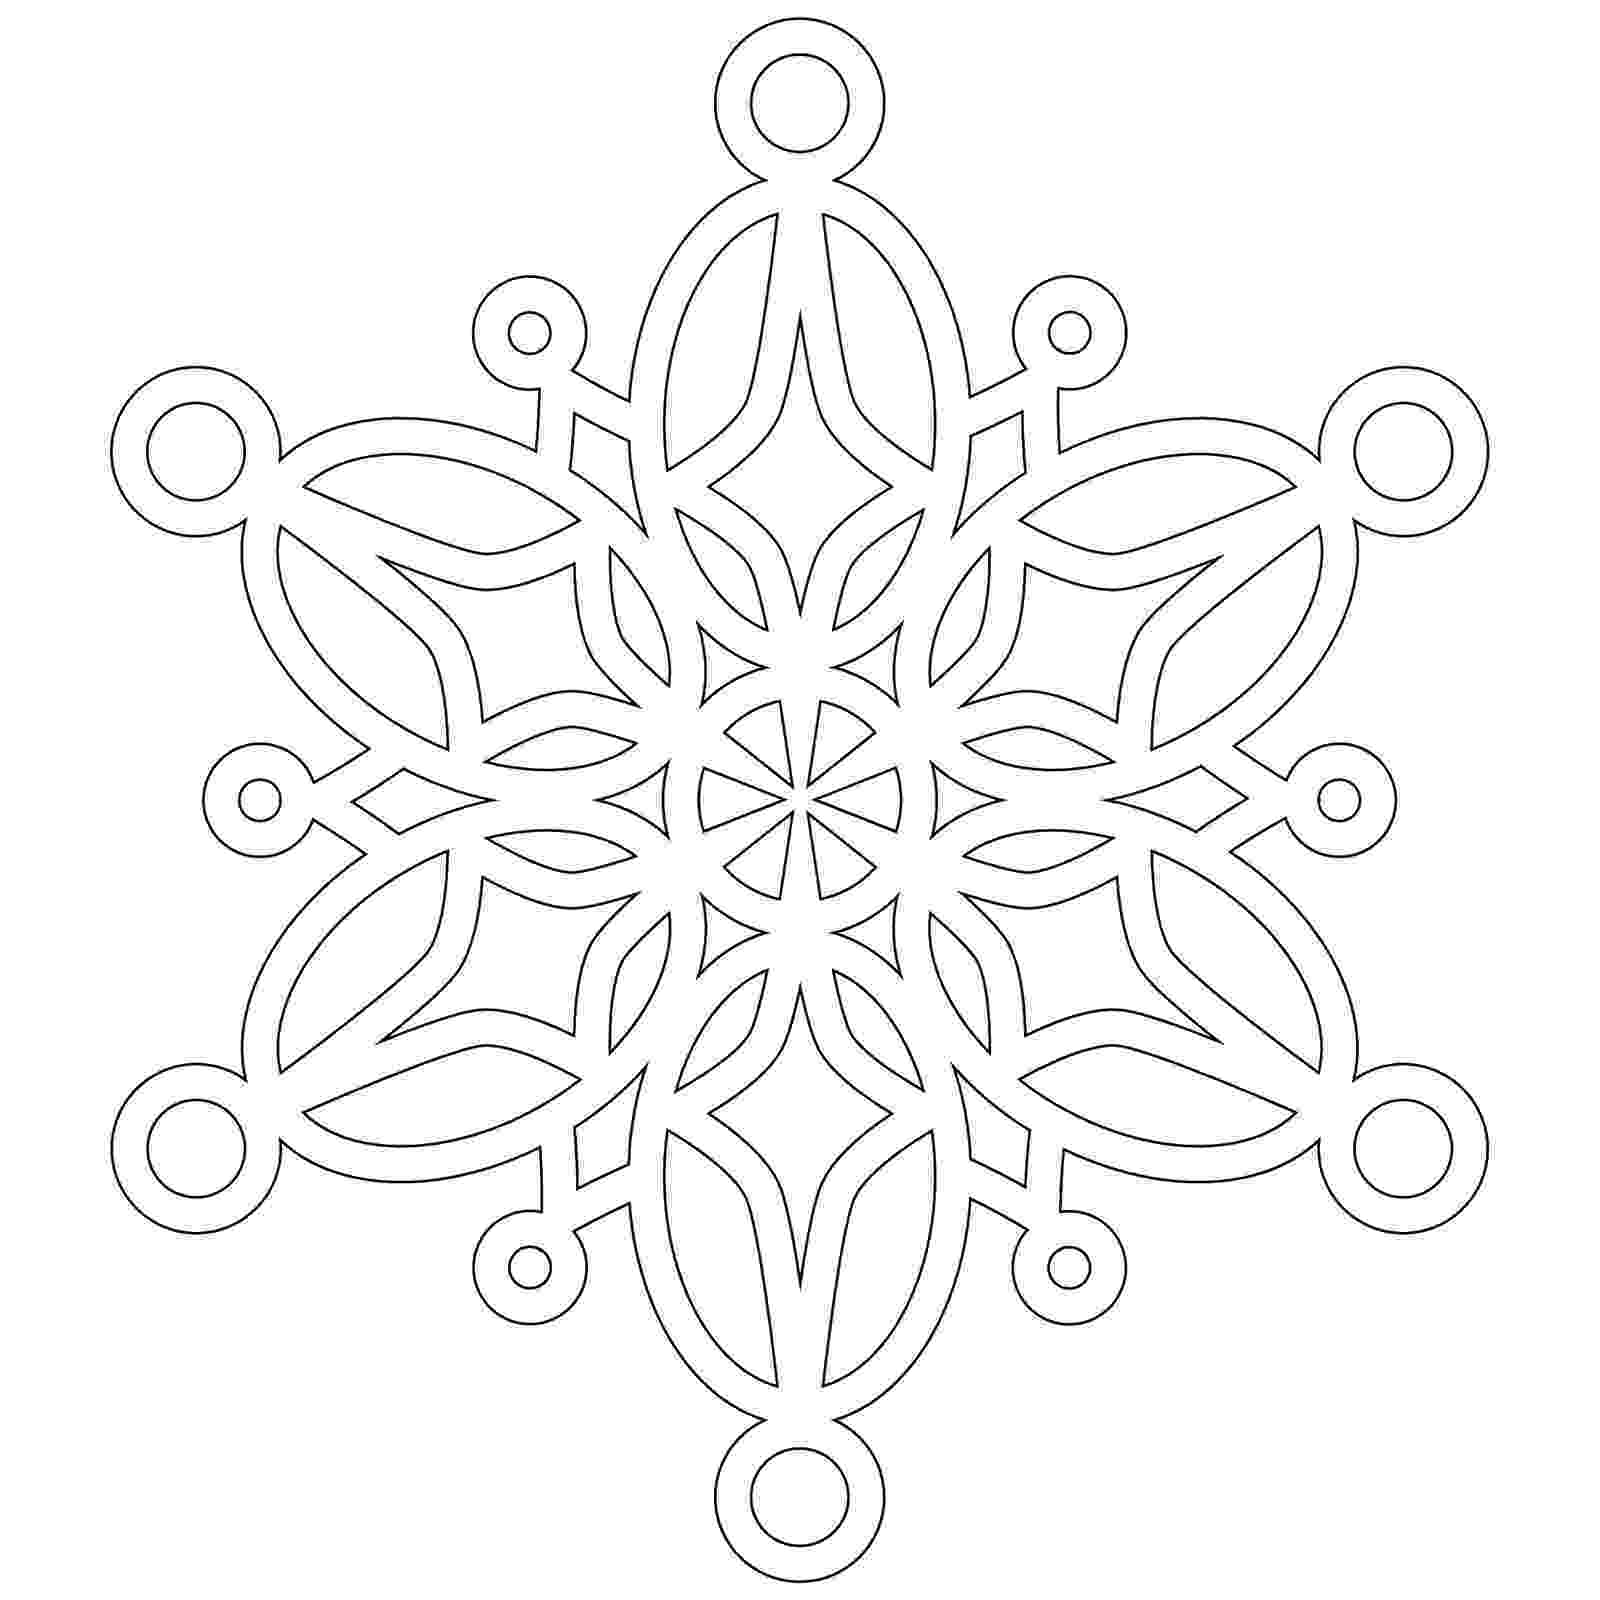 snow flake coloring pages snowflakes coloring page winter snow pages flake coloring